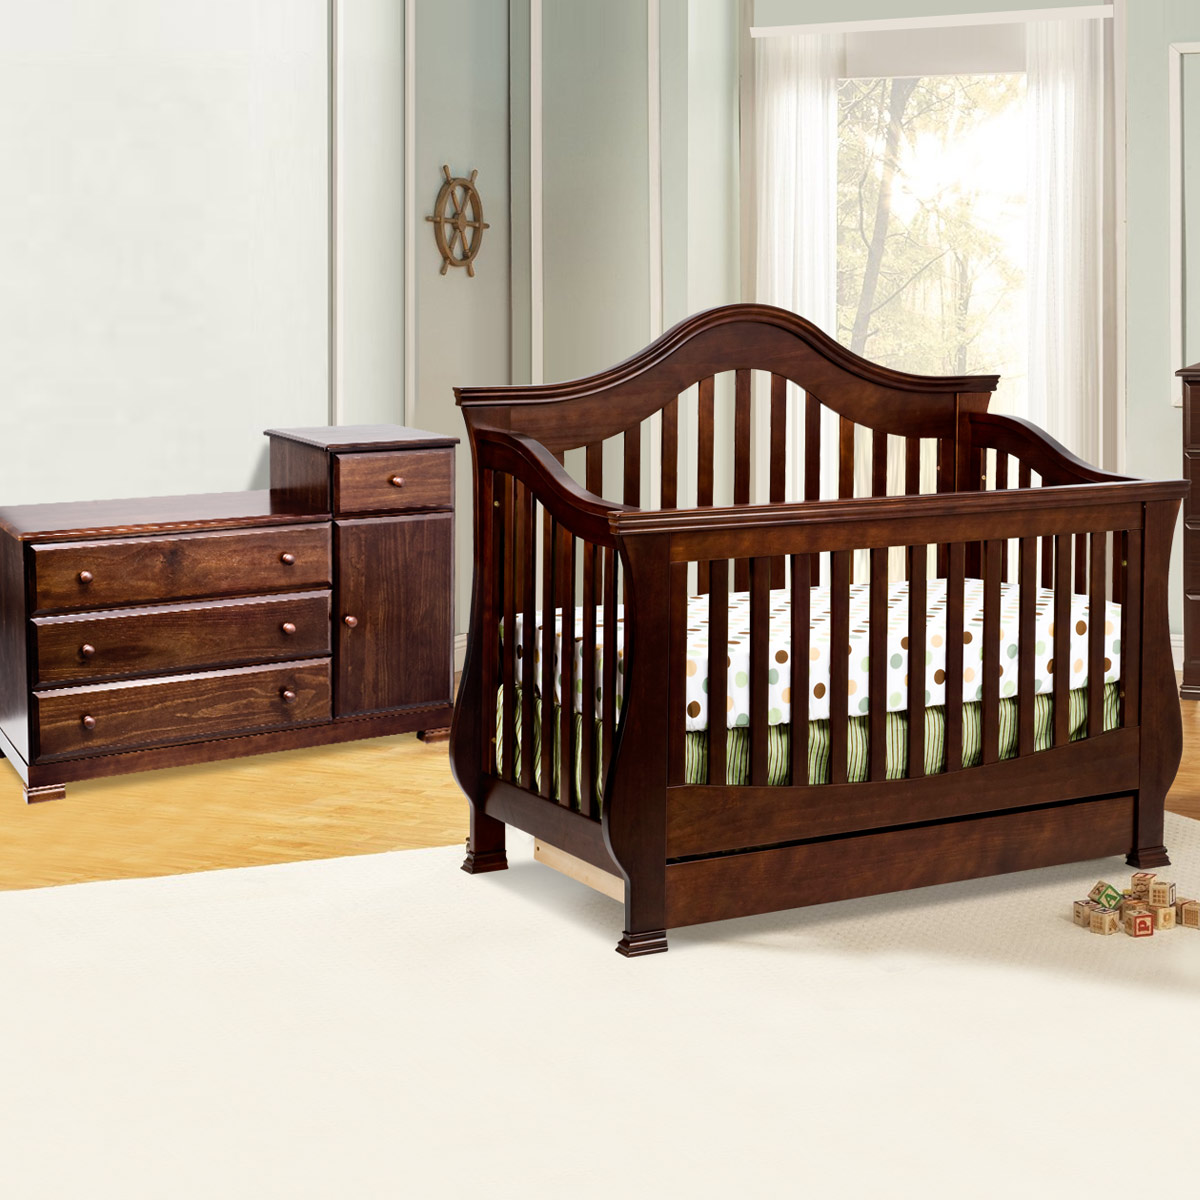 Million Dollar Baby Classic 2 Piece Nursery Set Ashbury Convertible Crib And Kalani Combo Dresser Changer In Espresso Free